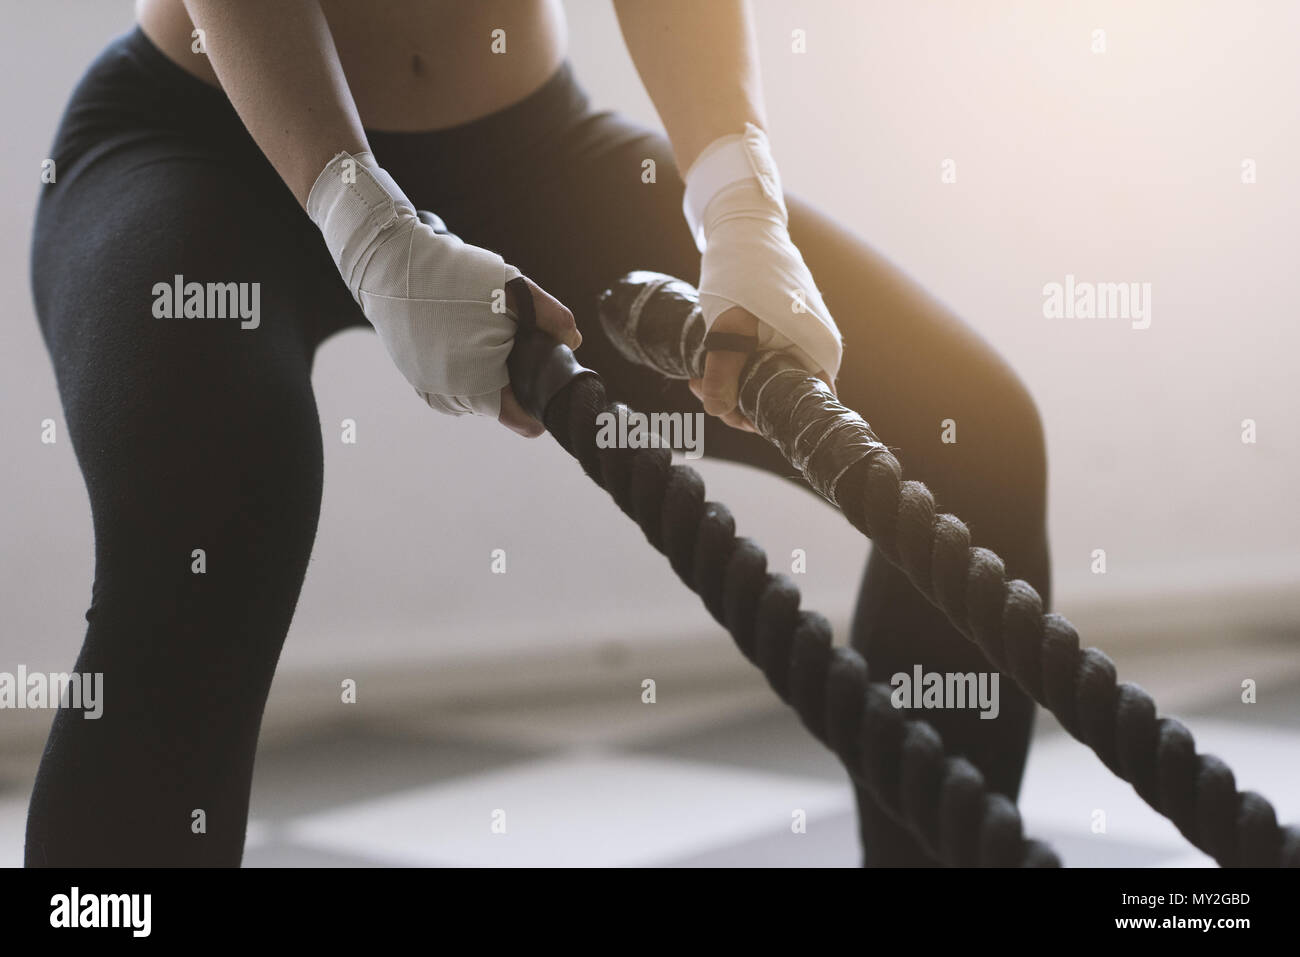 Young sporty woman doing battle rope training, she is swinging the rope, hands close up - Stock Image